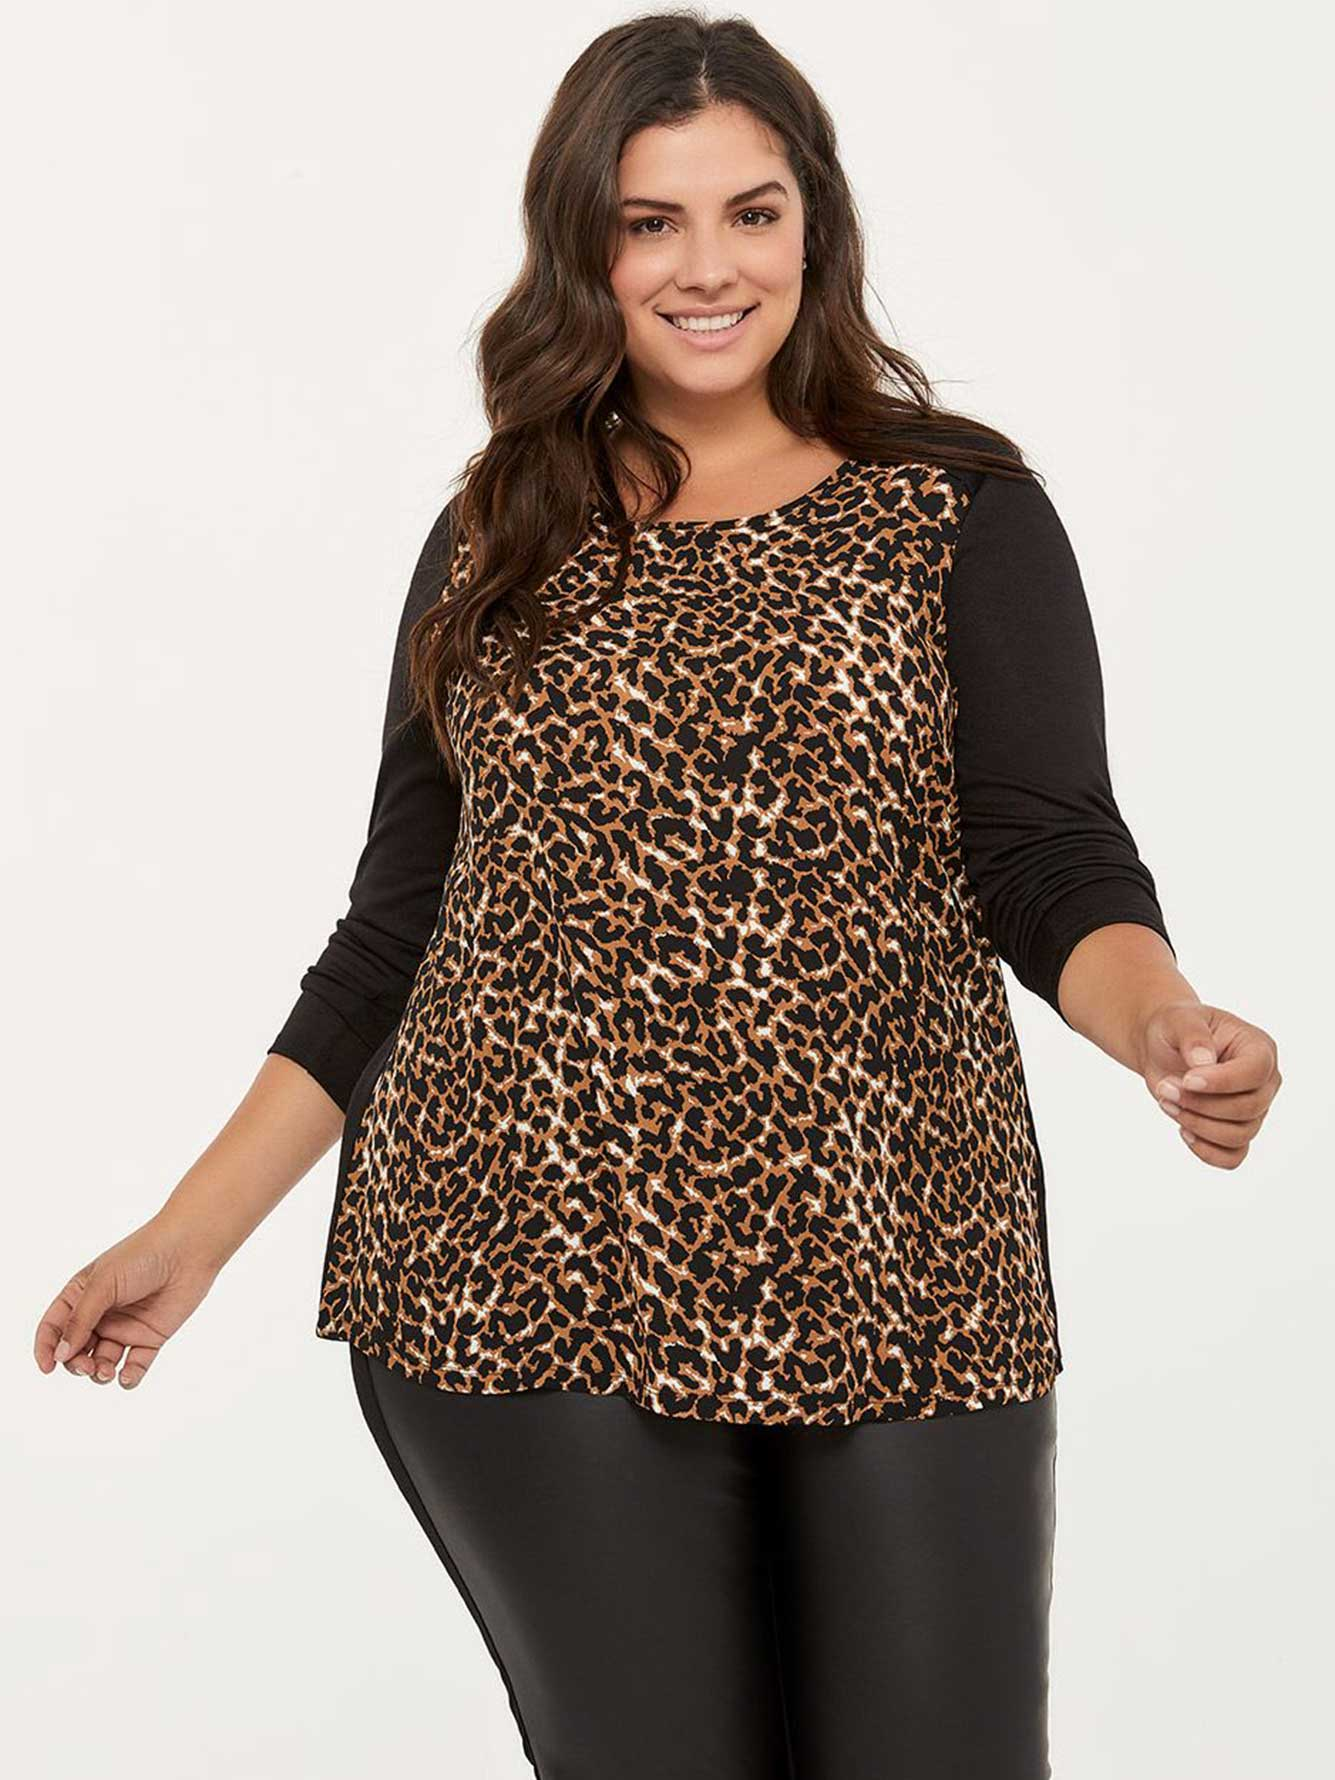 e4aa85c6fedc Long Sleeve Leopard Print Top - In Every Story | Penningtons